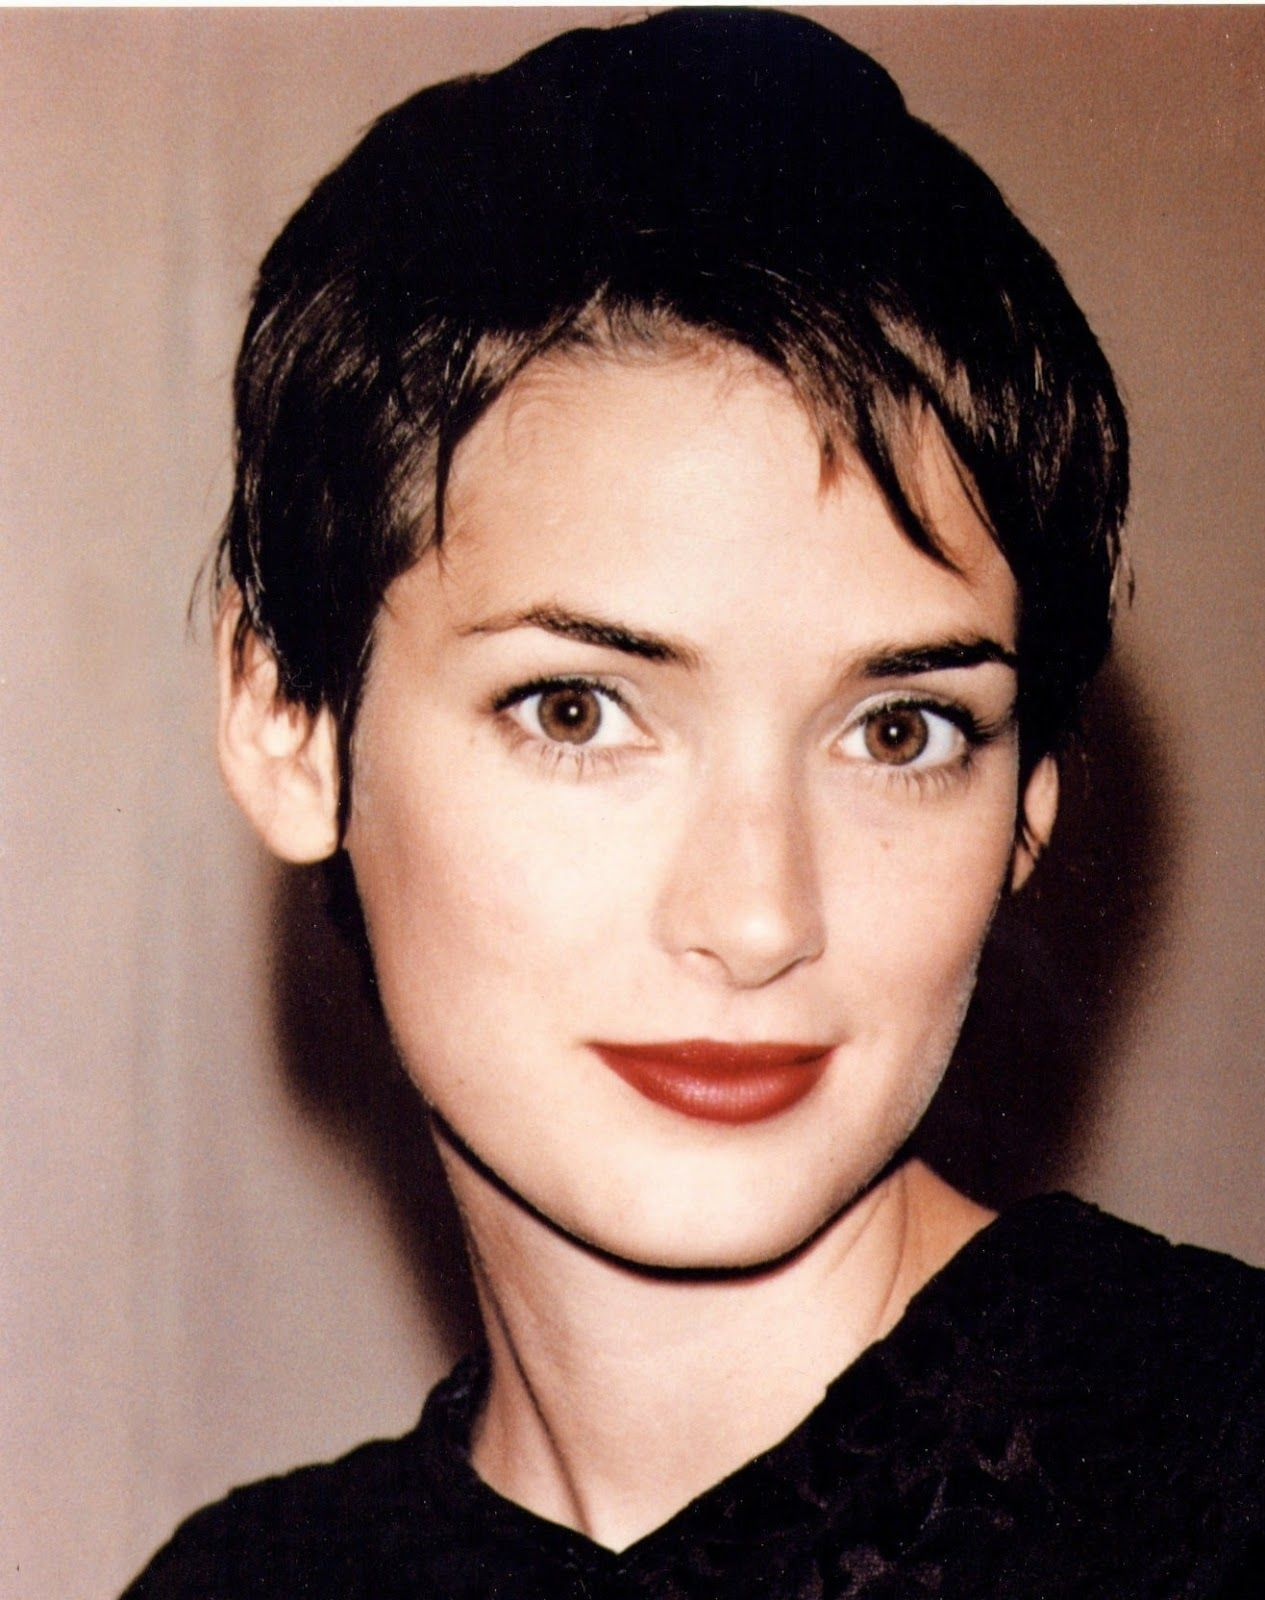 Pin by Katherine Wright on Hair | Winona ryder hair, Winona ryder style, Winona ryder